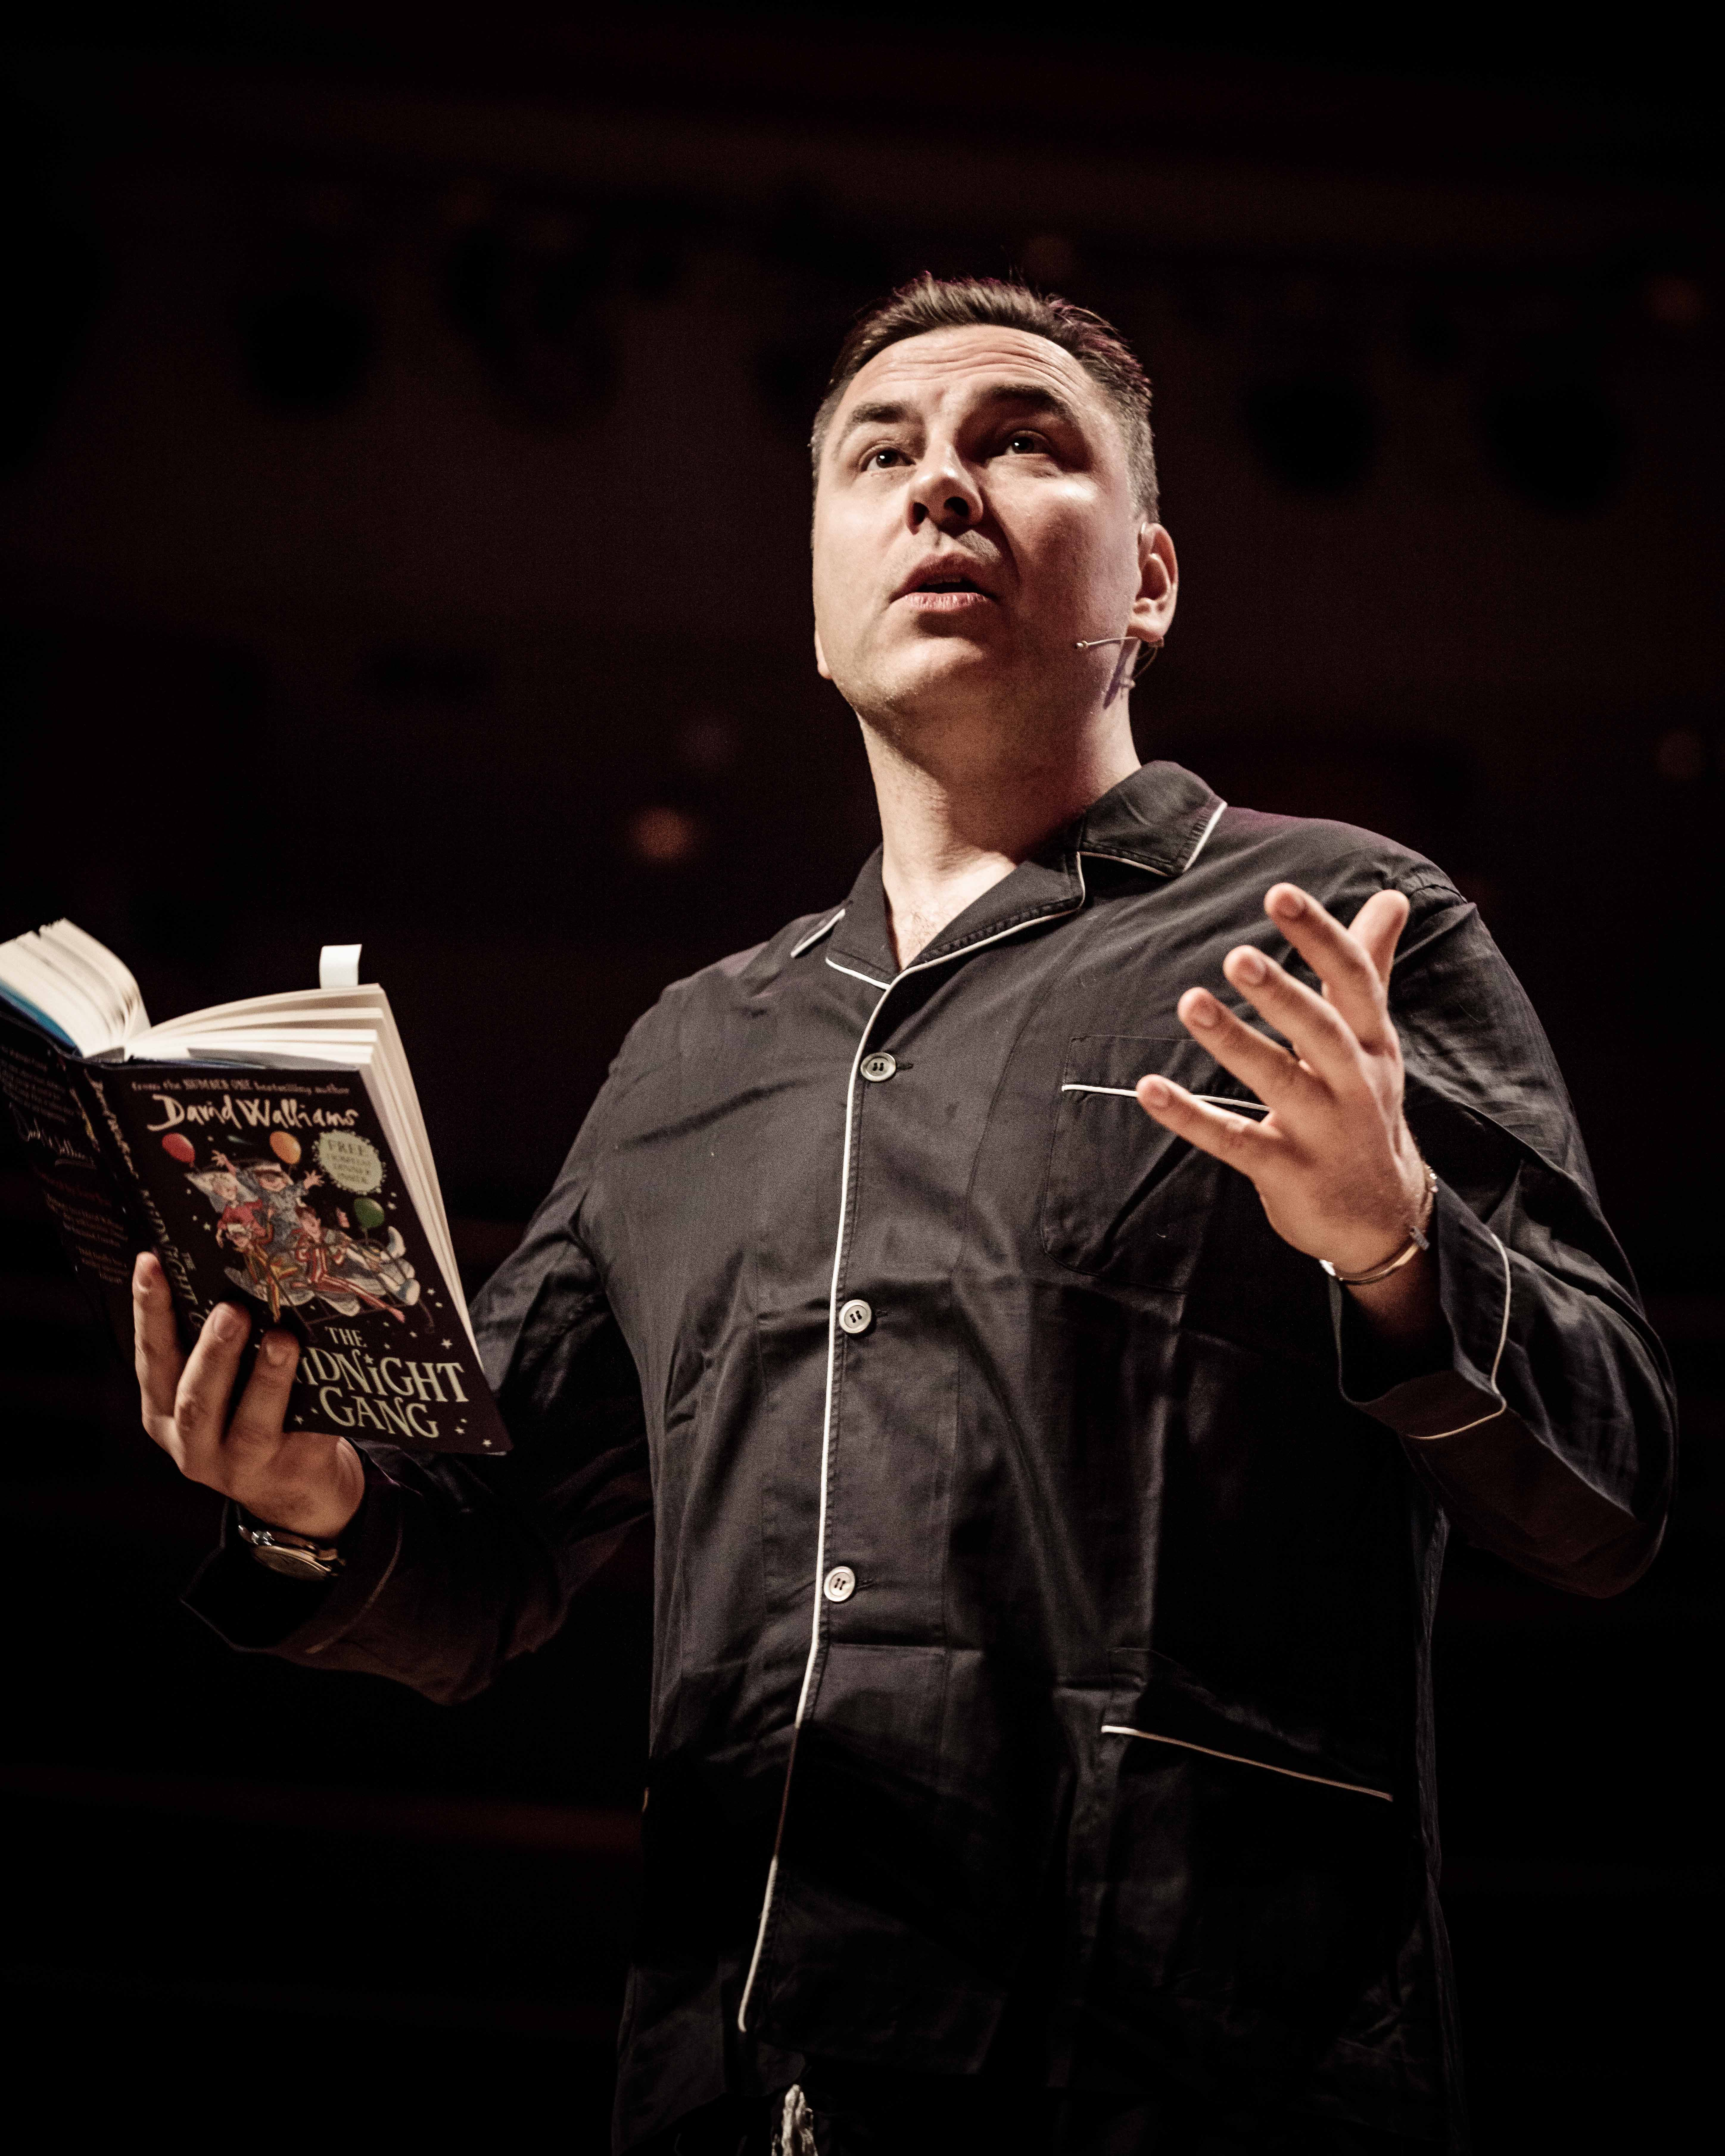 David Walliams Live from the Birmingham Symphony Hall